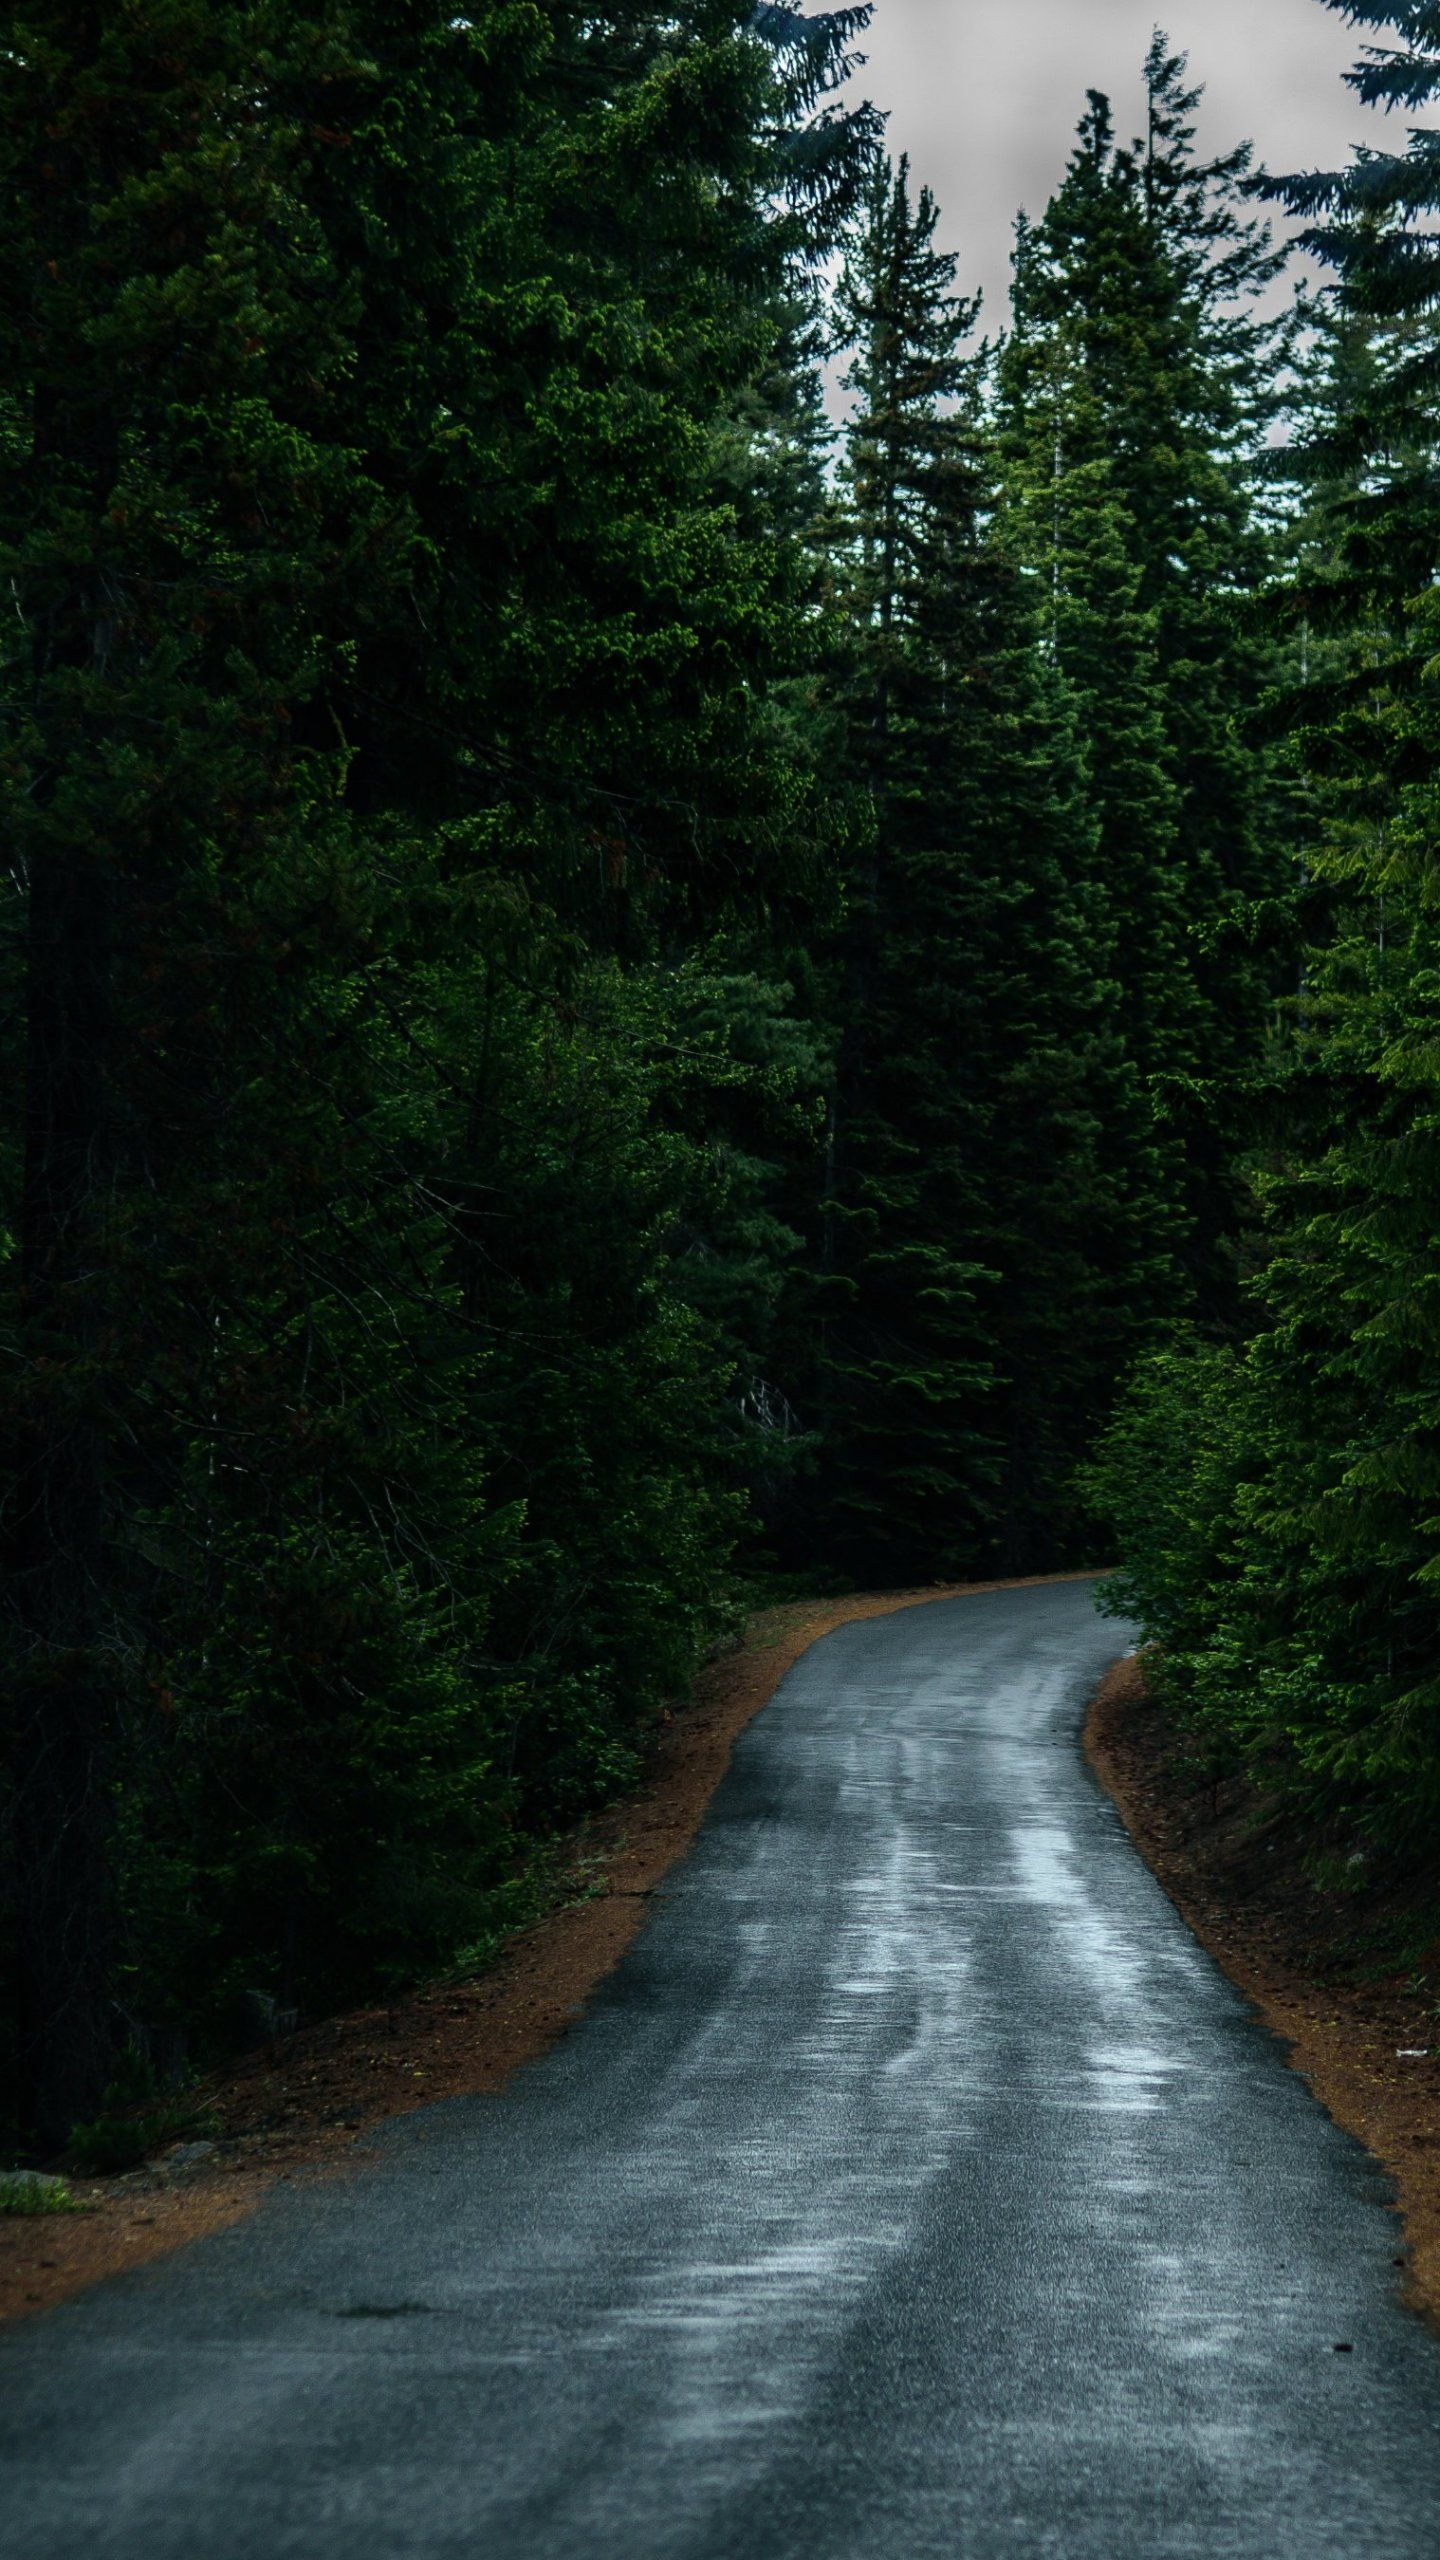 Road Through Forest iPhone Mobile Wallpaper | iPhone Wallpaper in 2019 | Iphone wallpaper ...